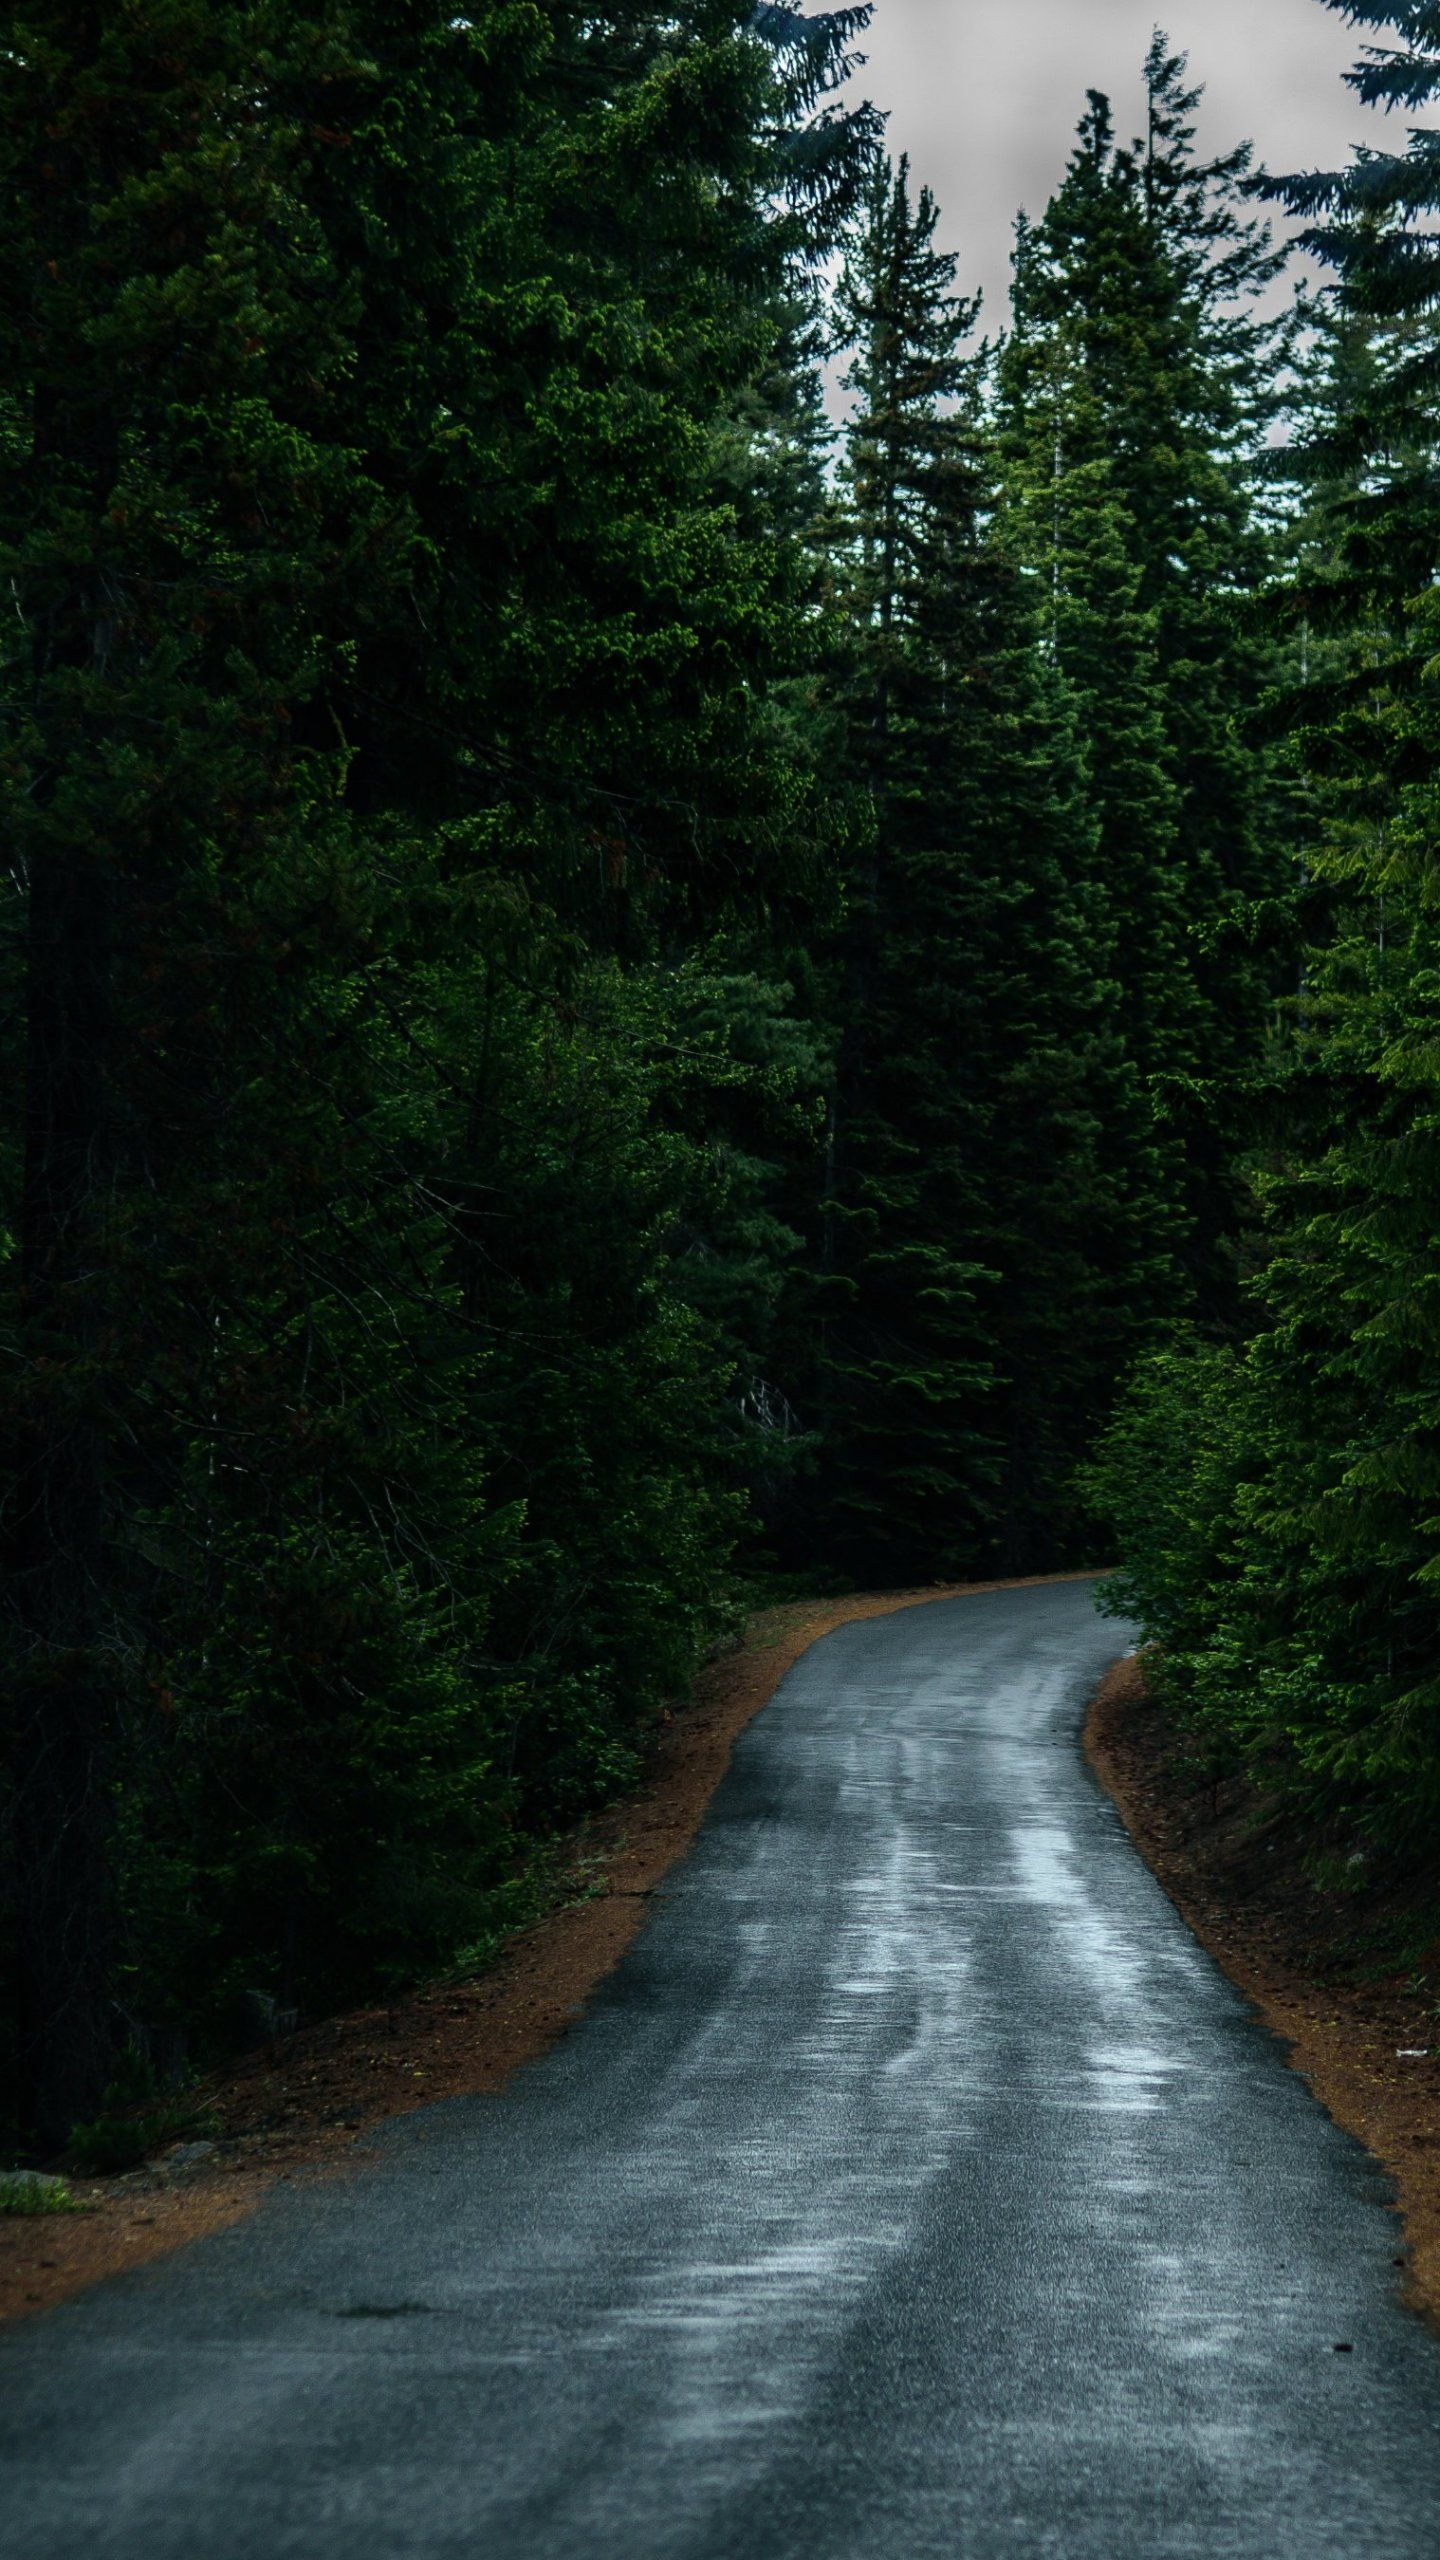 Road Through Forest iPhone Mobile Wallpaper | iPhone Wallpaper in 2019 | Iphone wallpaper ...